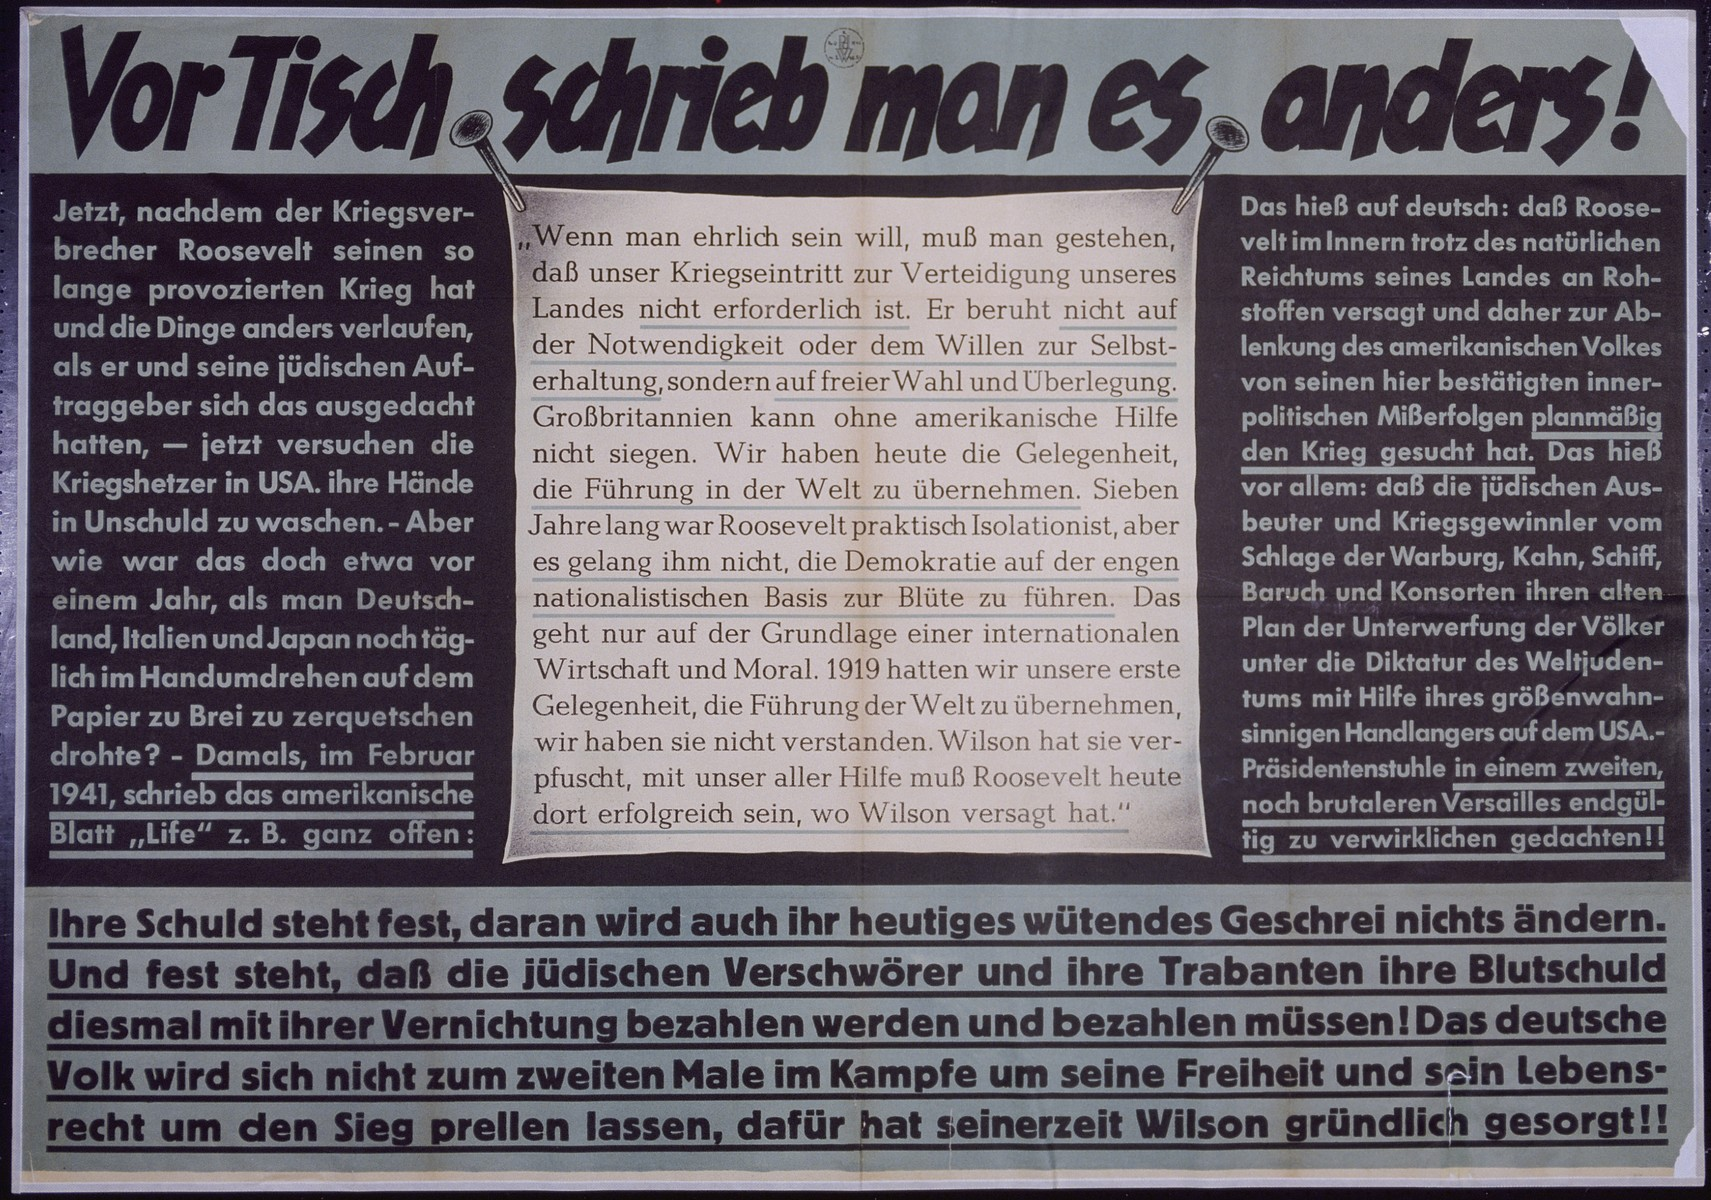 """Nazi propaganda poster entitled, """"Vor Tisch schrieb man es anders,""""  issued by the """"Parole der Woche,"""" a wall newspaper (Wandzeitung) published by the National Socialist Party propaganda office in Munich."""